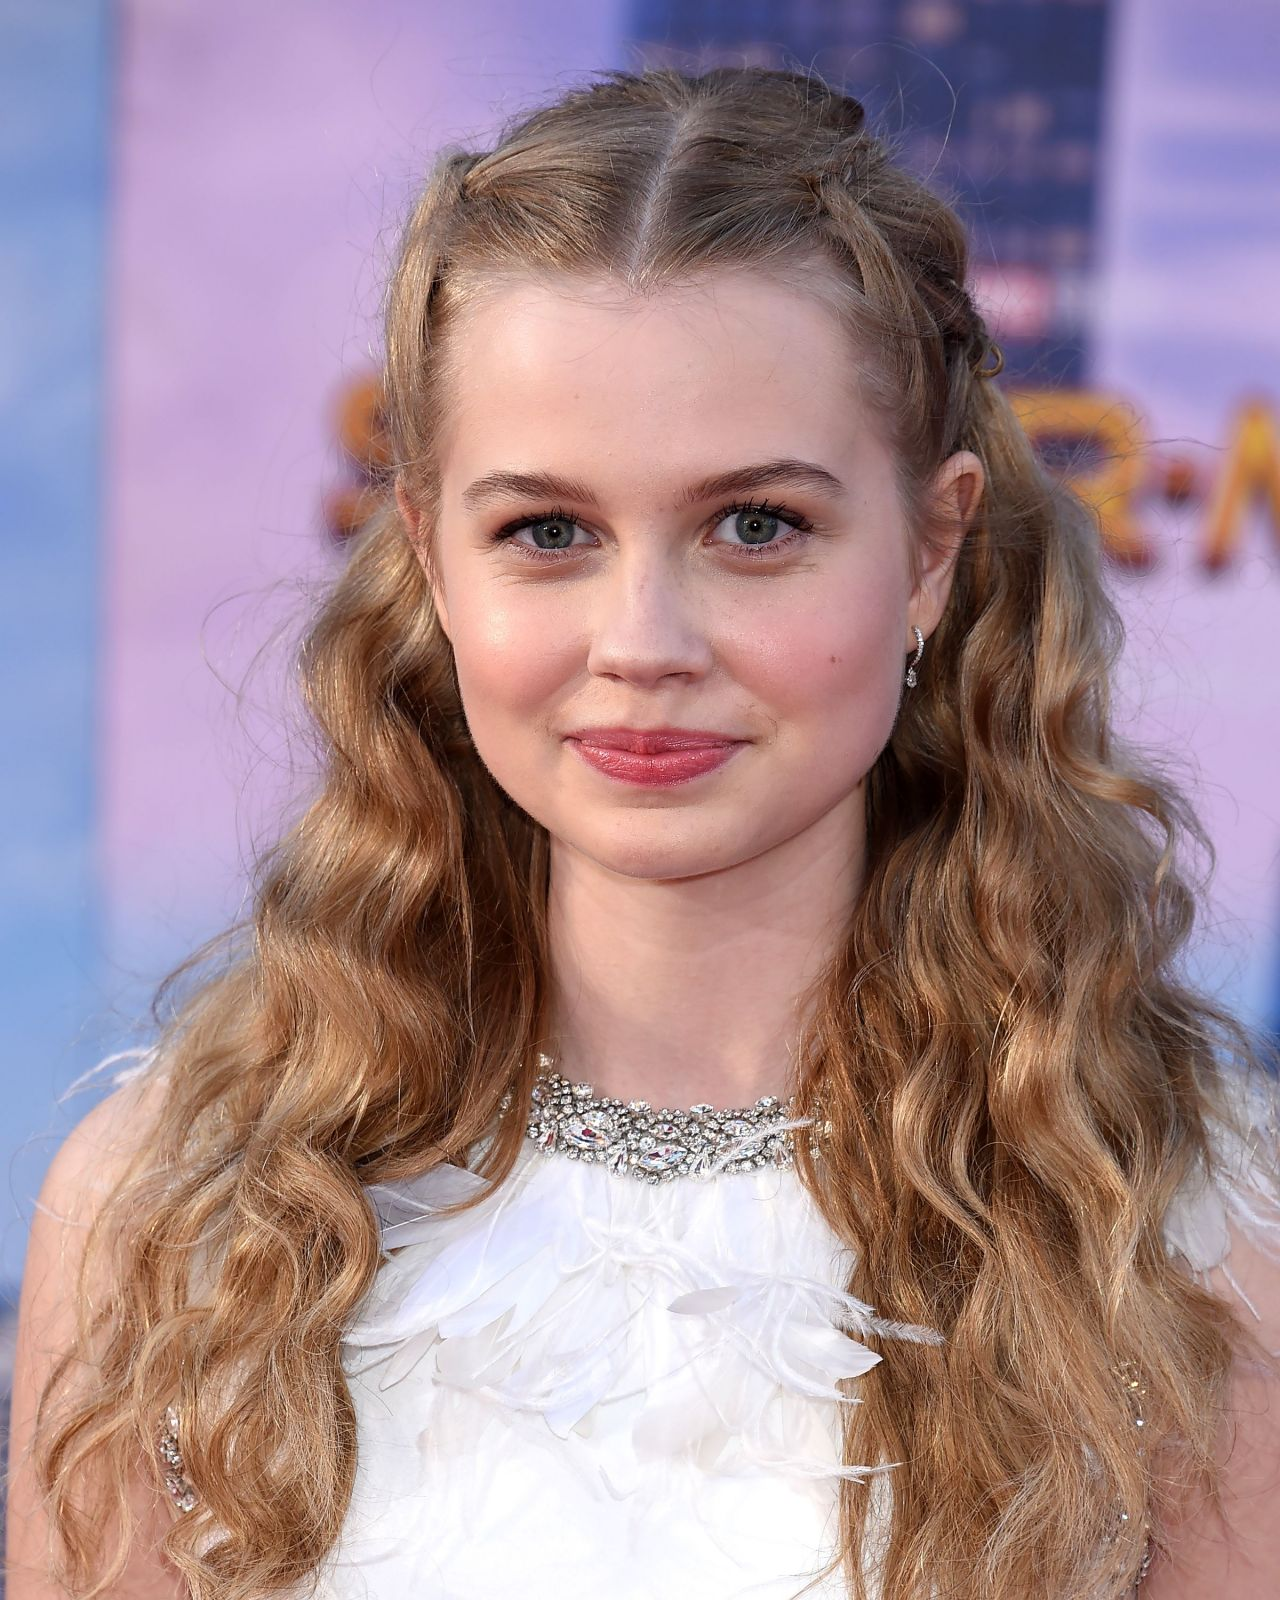 Angourie rice spider man homecoming premiere in hollywood nude (54 image)